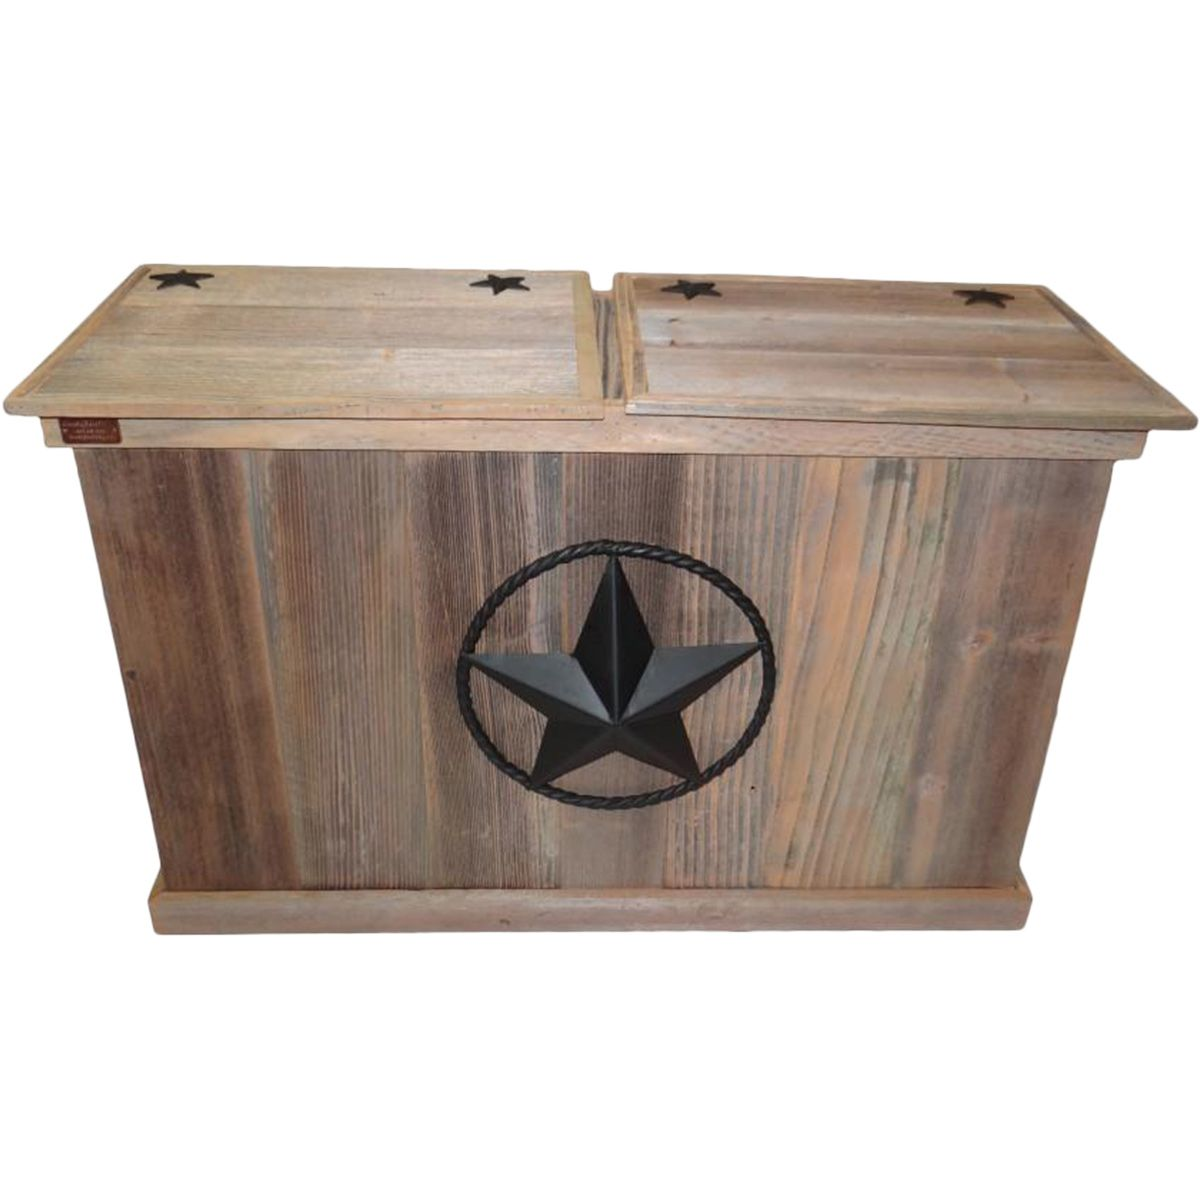 Star Trash & Recycling Container